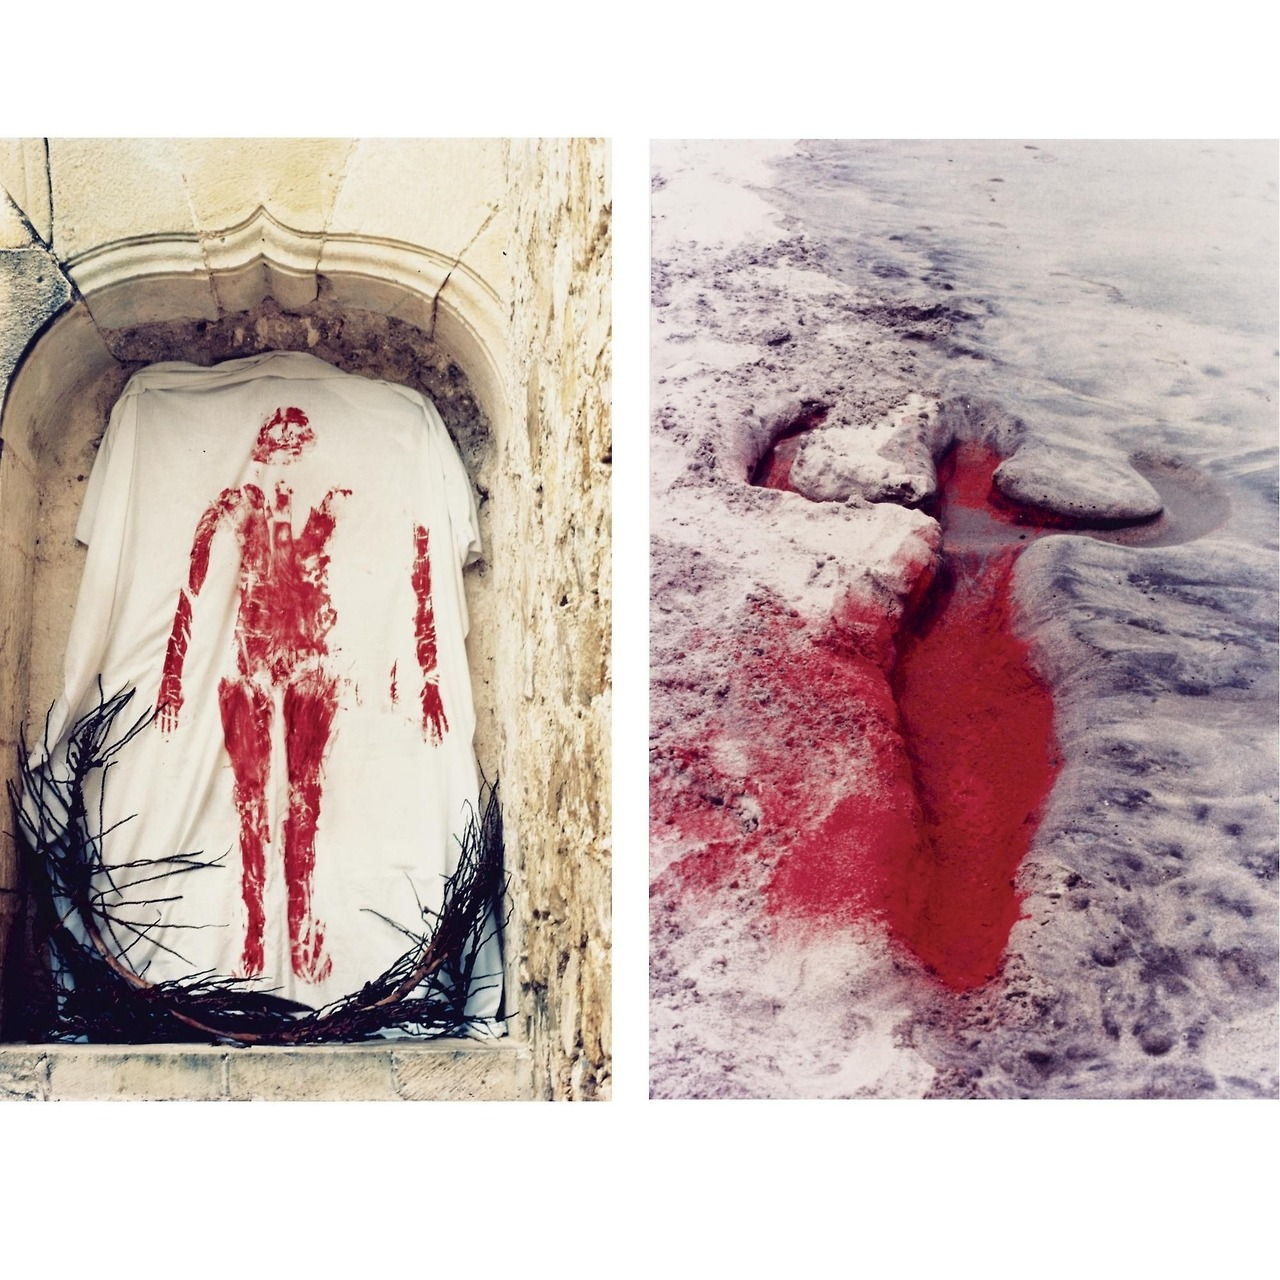 Ana Mendieta  —  Silueta Work , Mexico, 1976